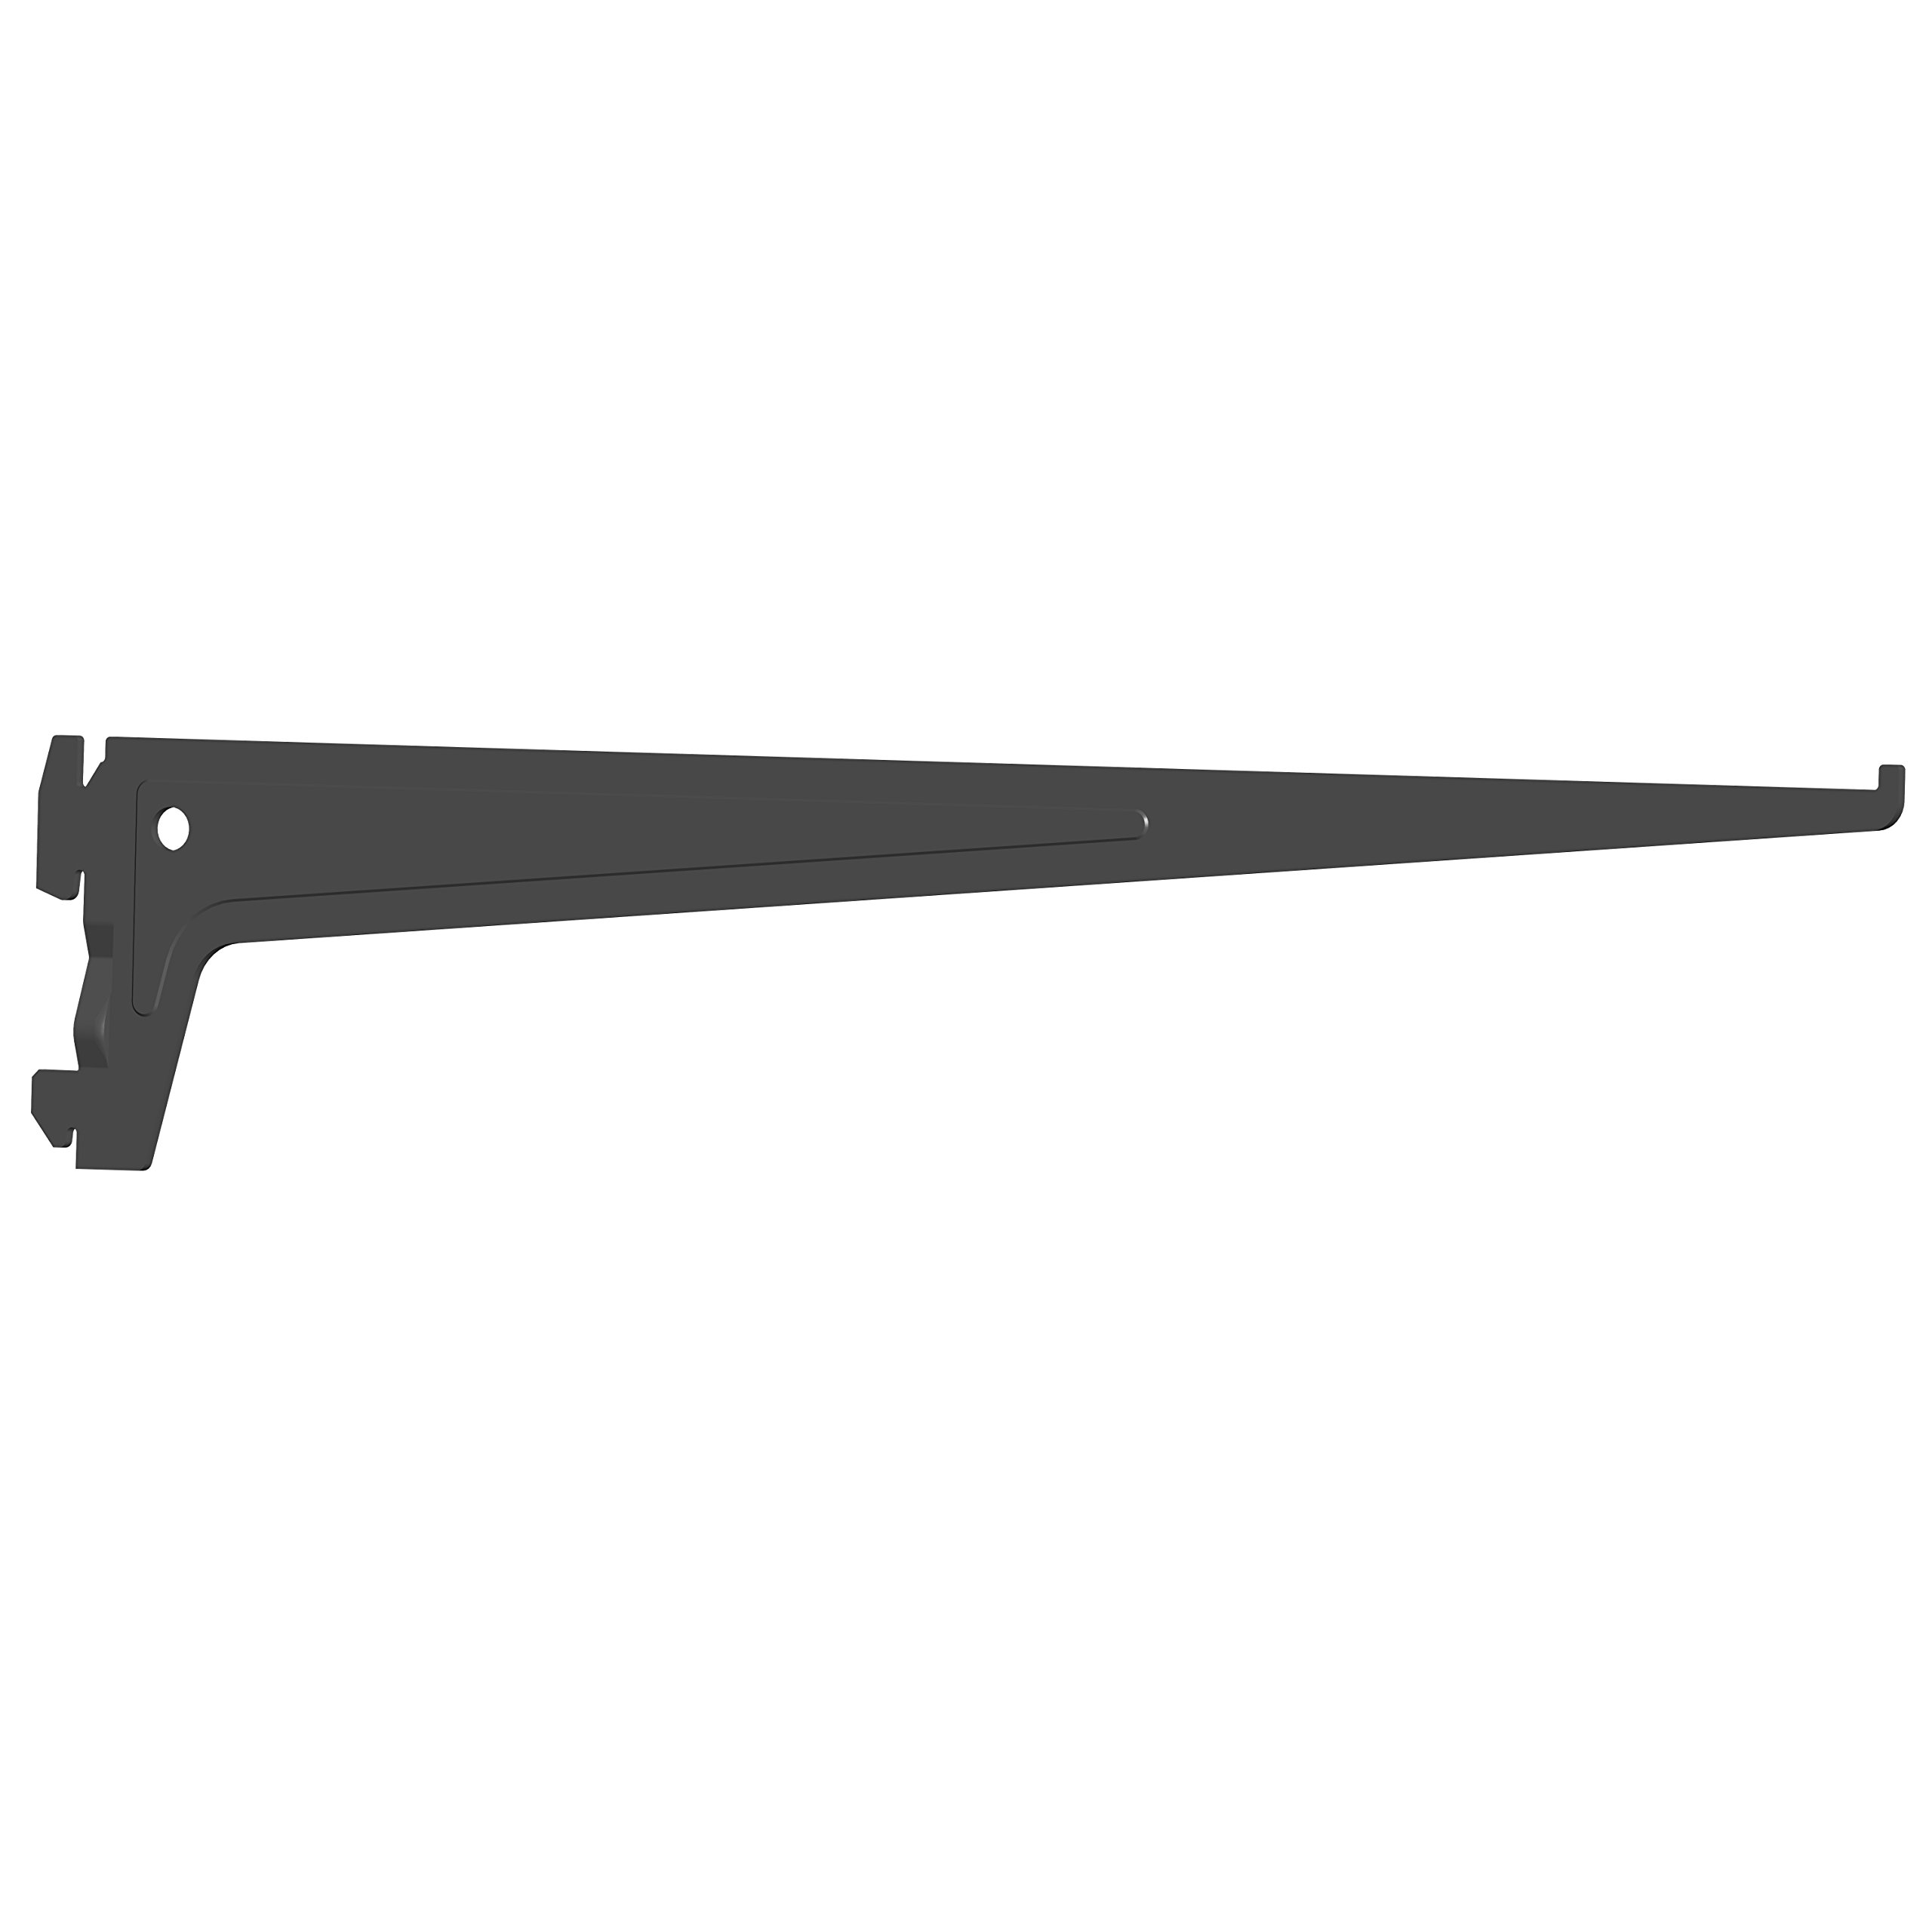 Element System Pro-Support Bracket Single Row, Pack of 2, 7 cm, 3 Colours, Length 40 cm, Wall Shelf, Black, 18133–00016